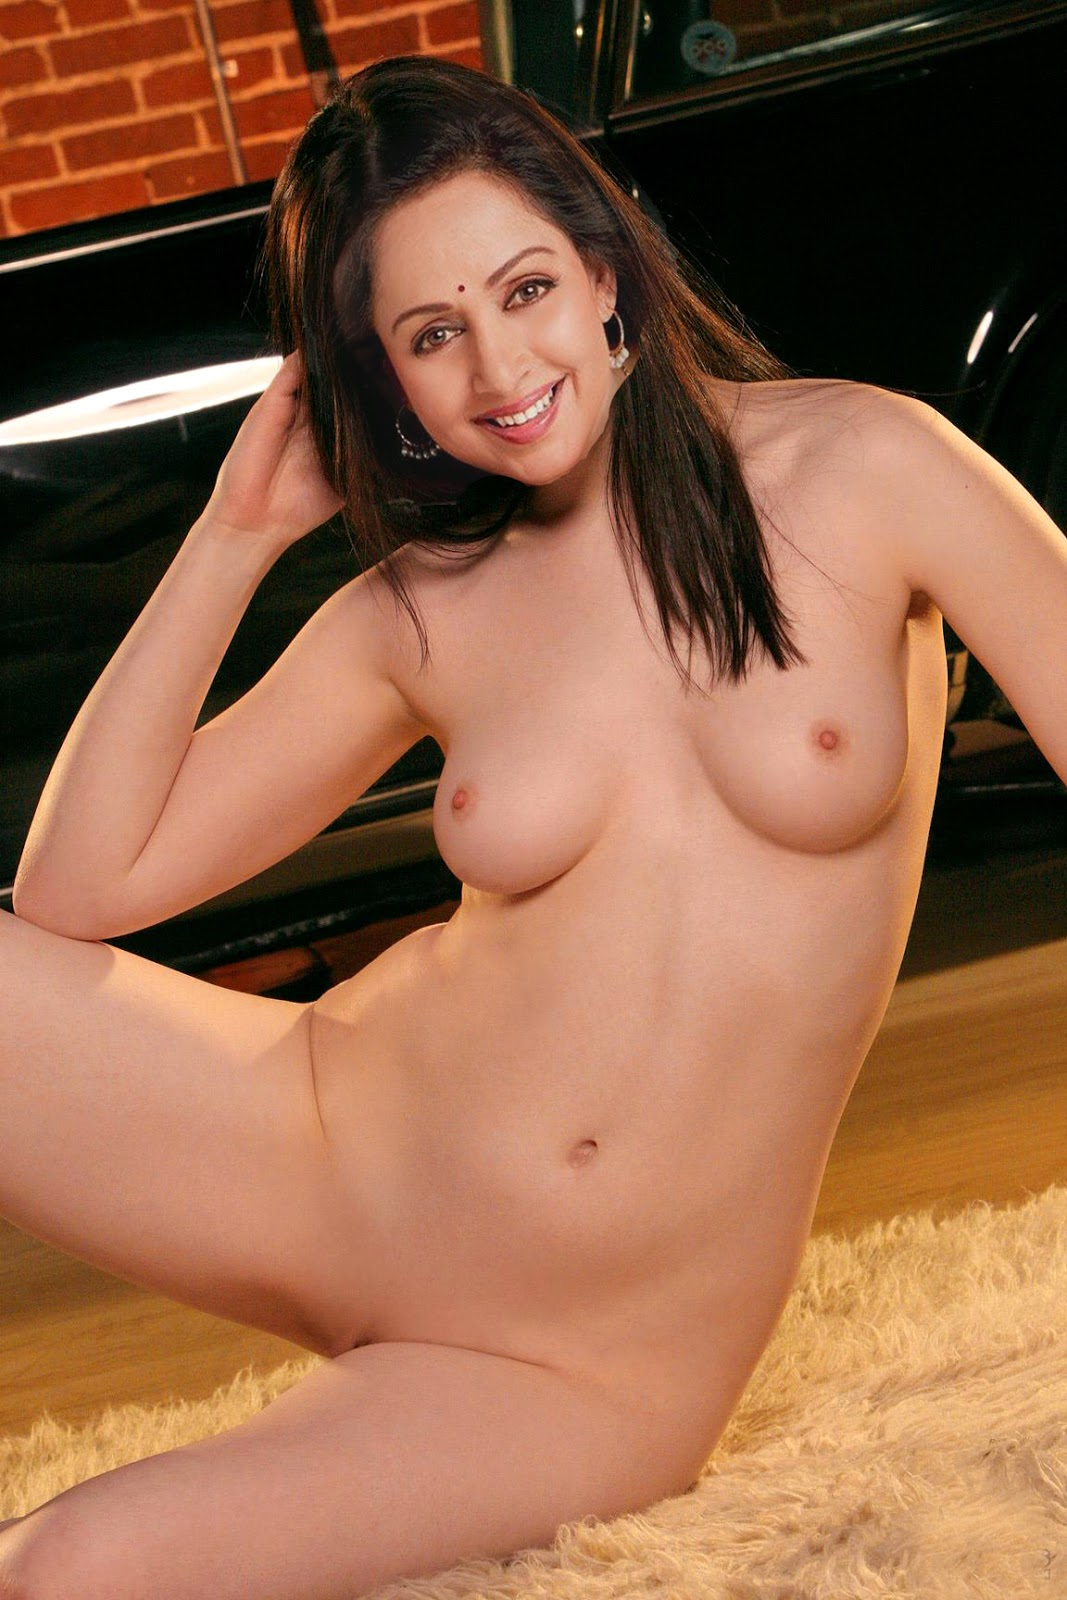 sexy-hema-malini-nude-amateur-adult-video-on-demand